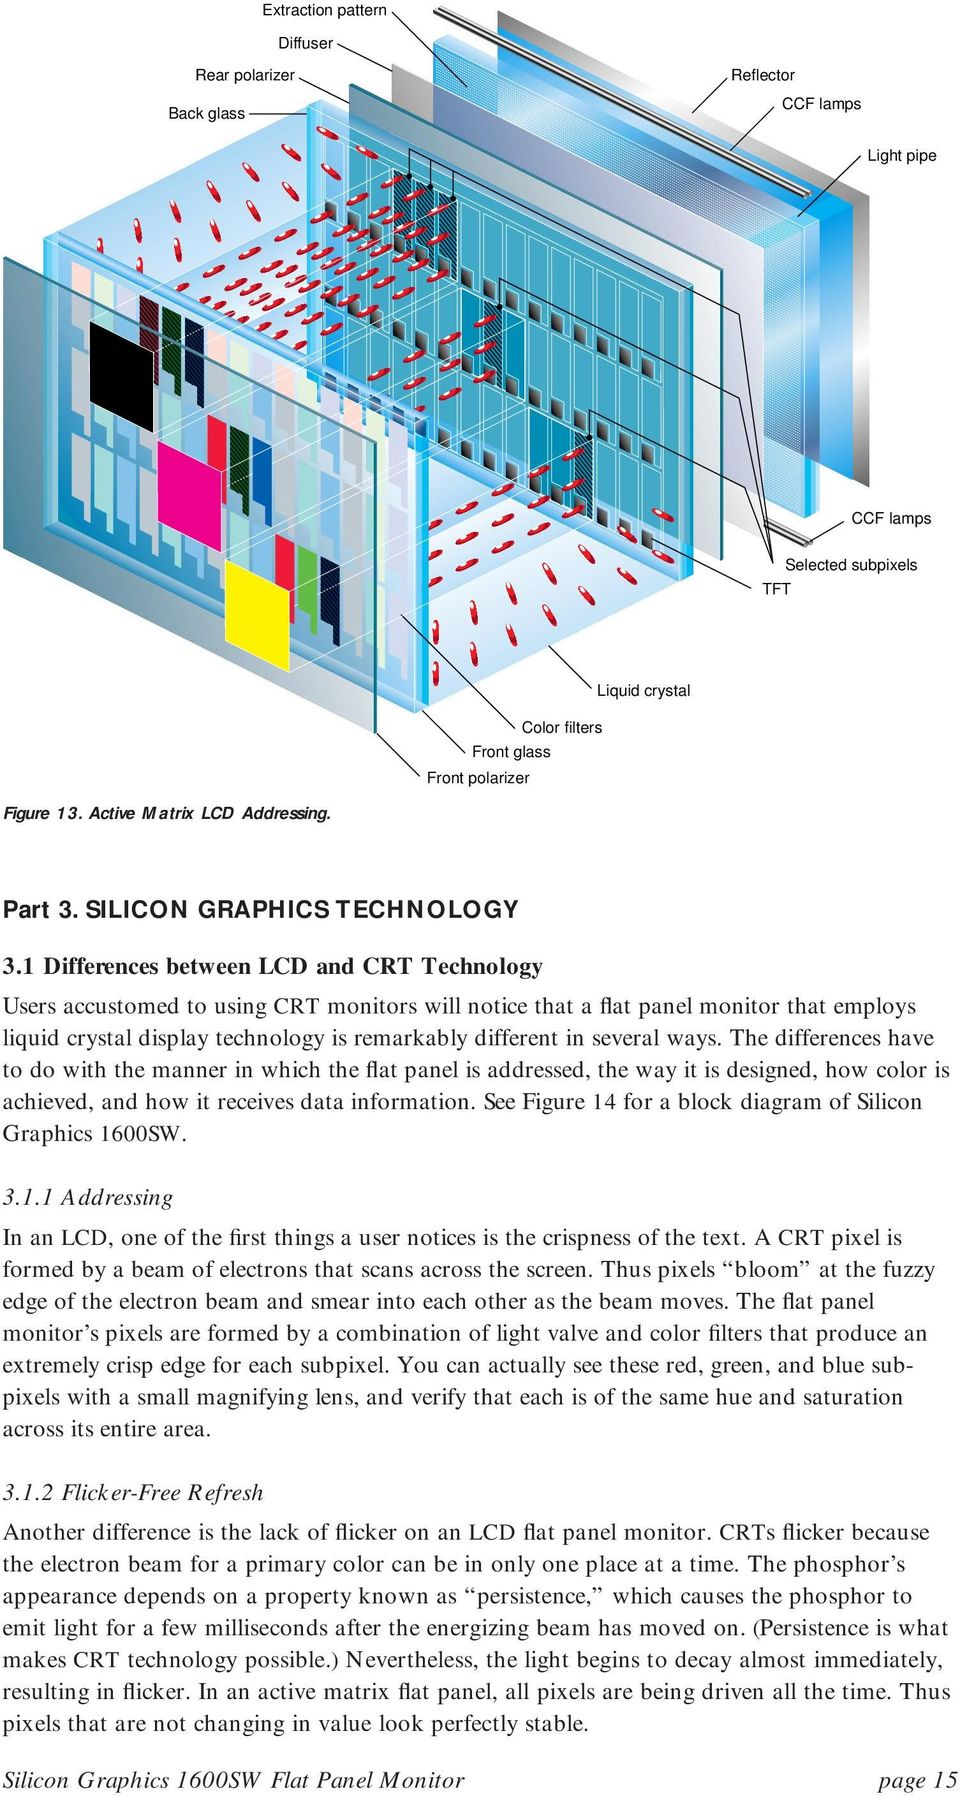 White Paper Silicon Graphics 1600sw Flat Panel Monitor Pdf Crt Diagram 1 Differences Between Lcd And Technology Users Accustomed To Using Monitors Will Notice That